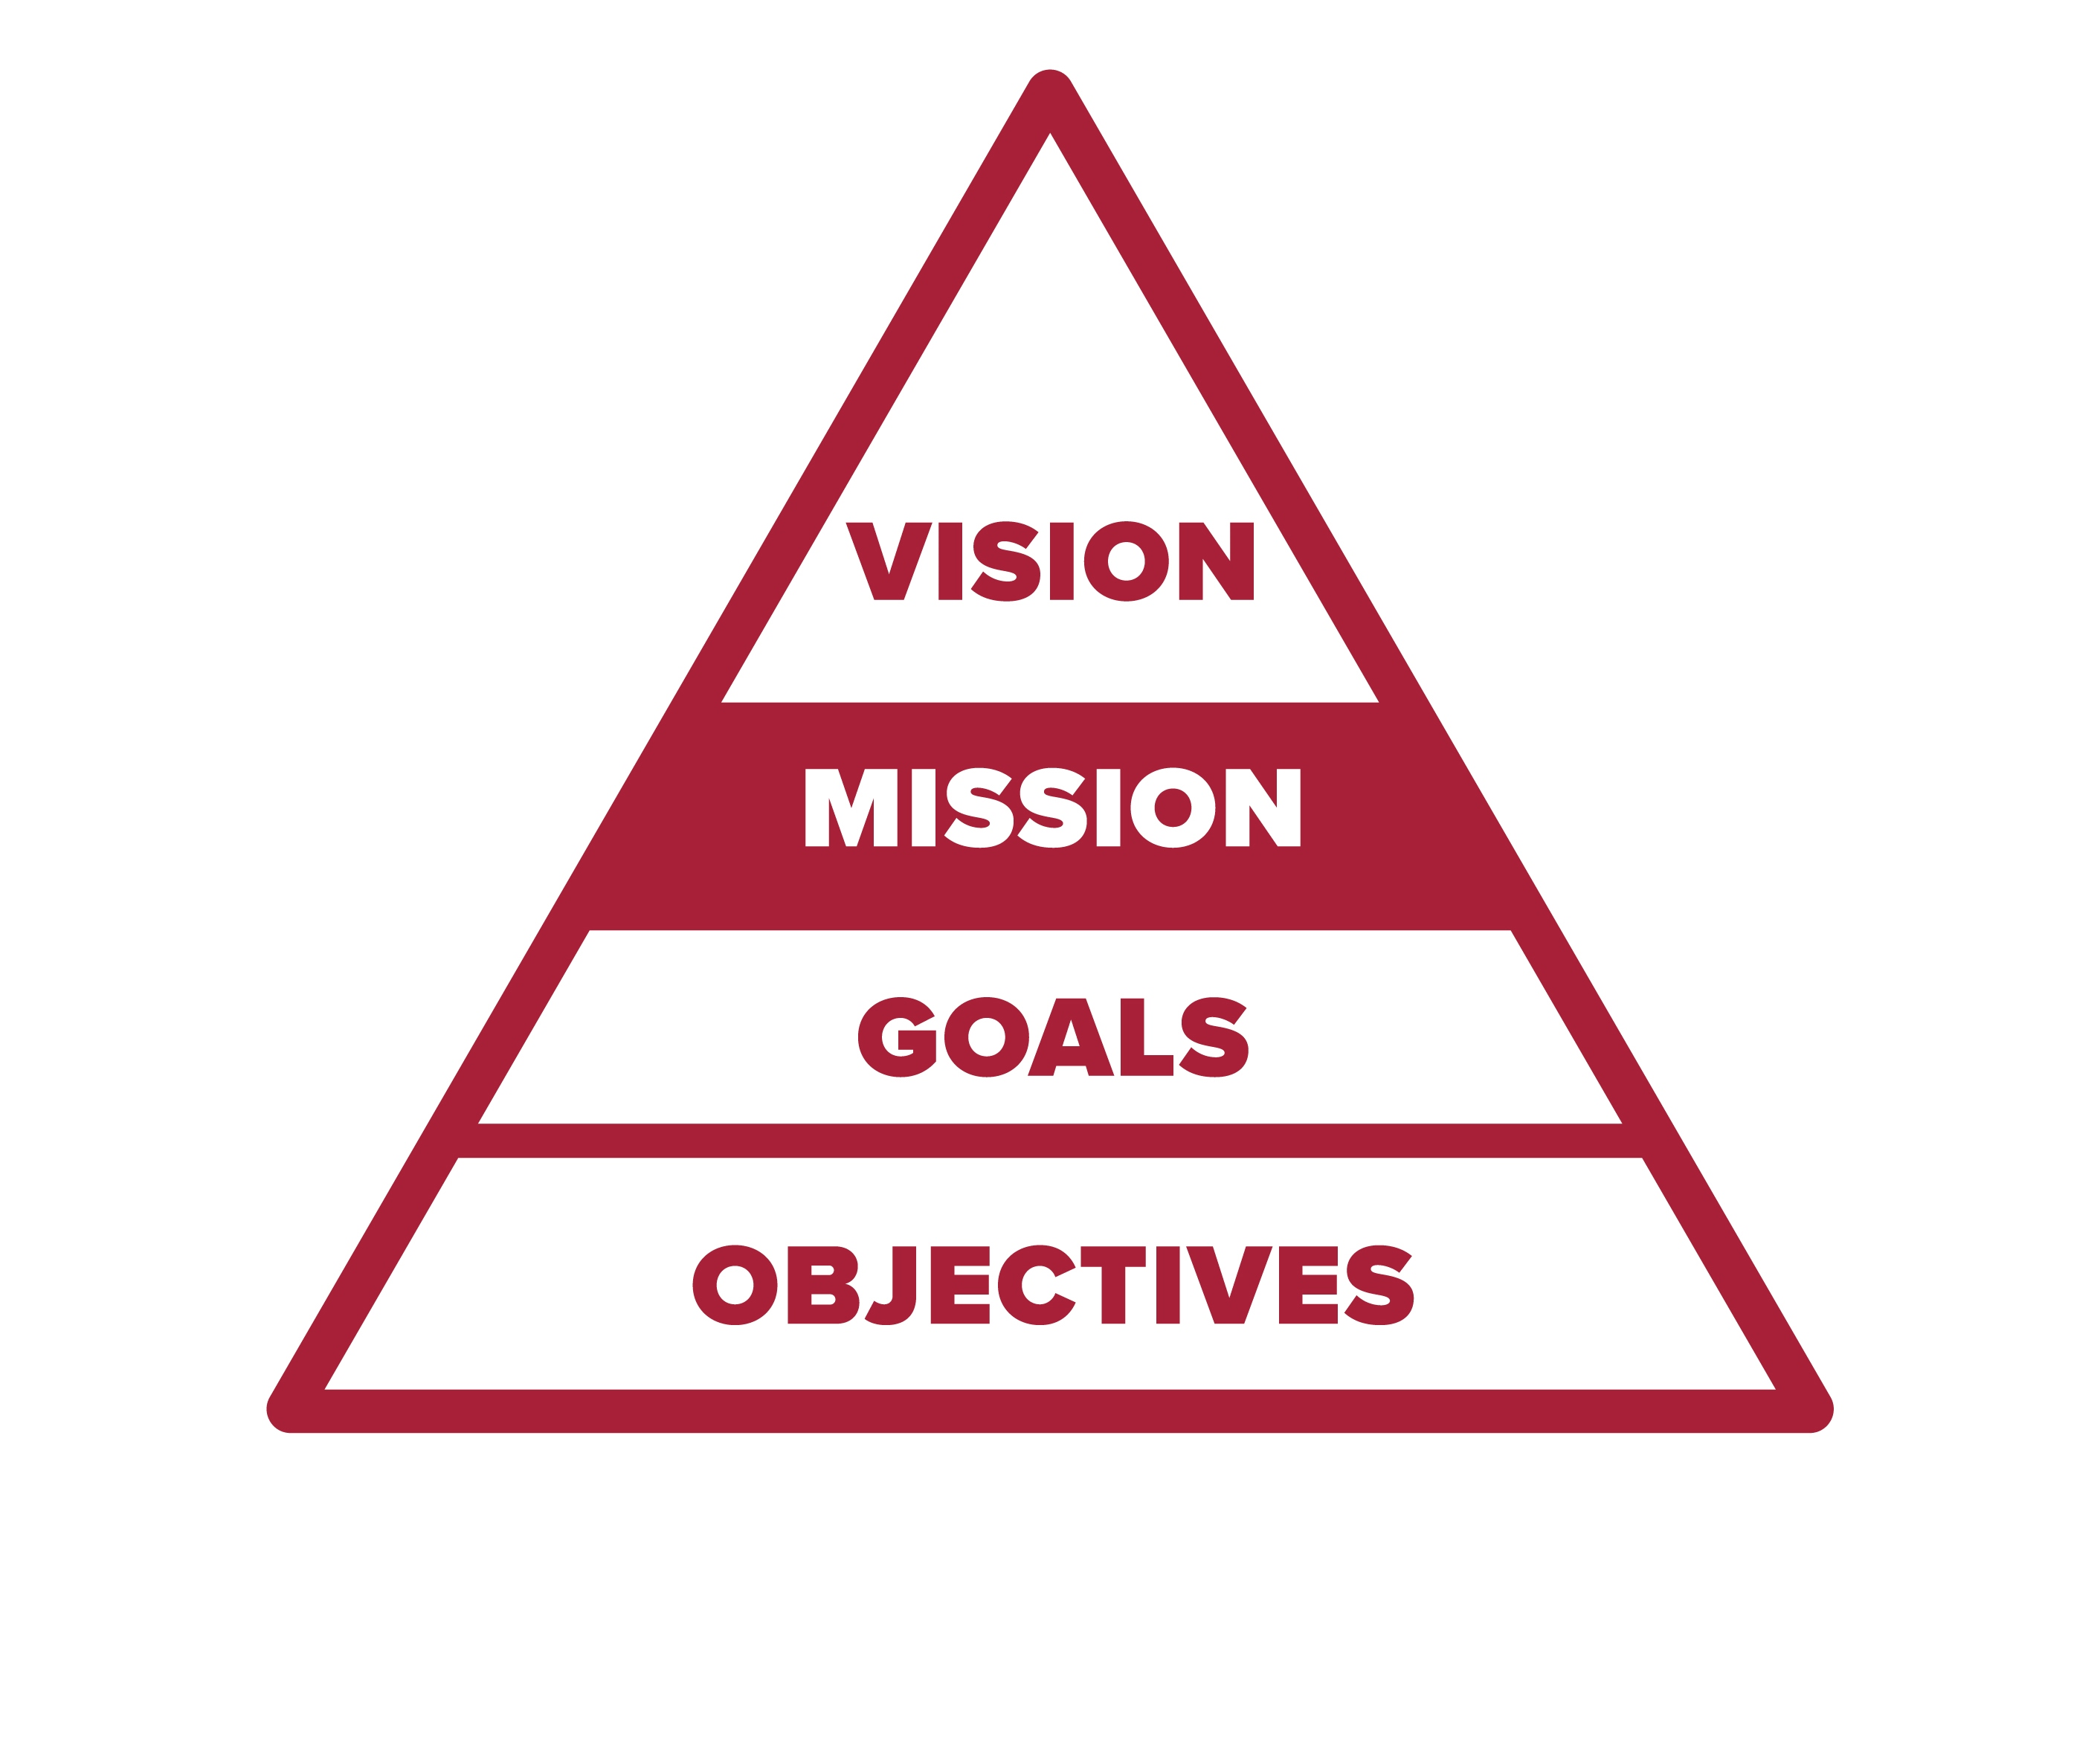 Image of mission statement icon